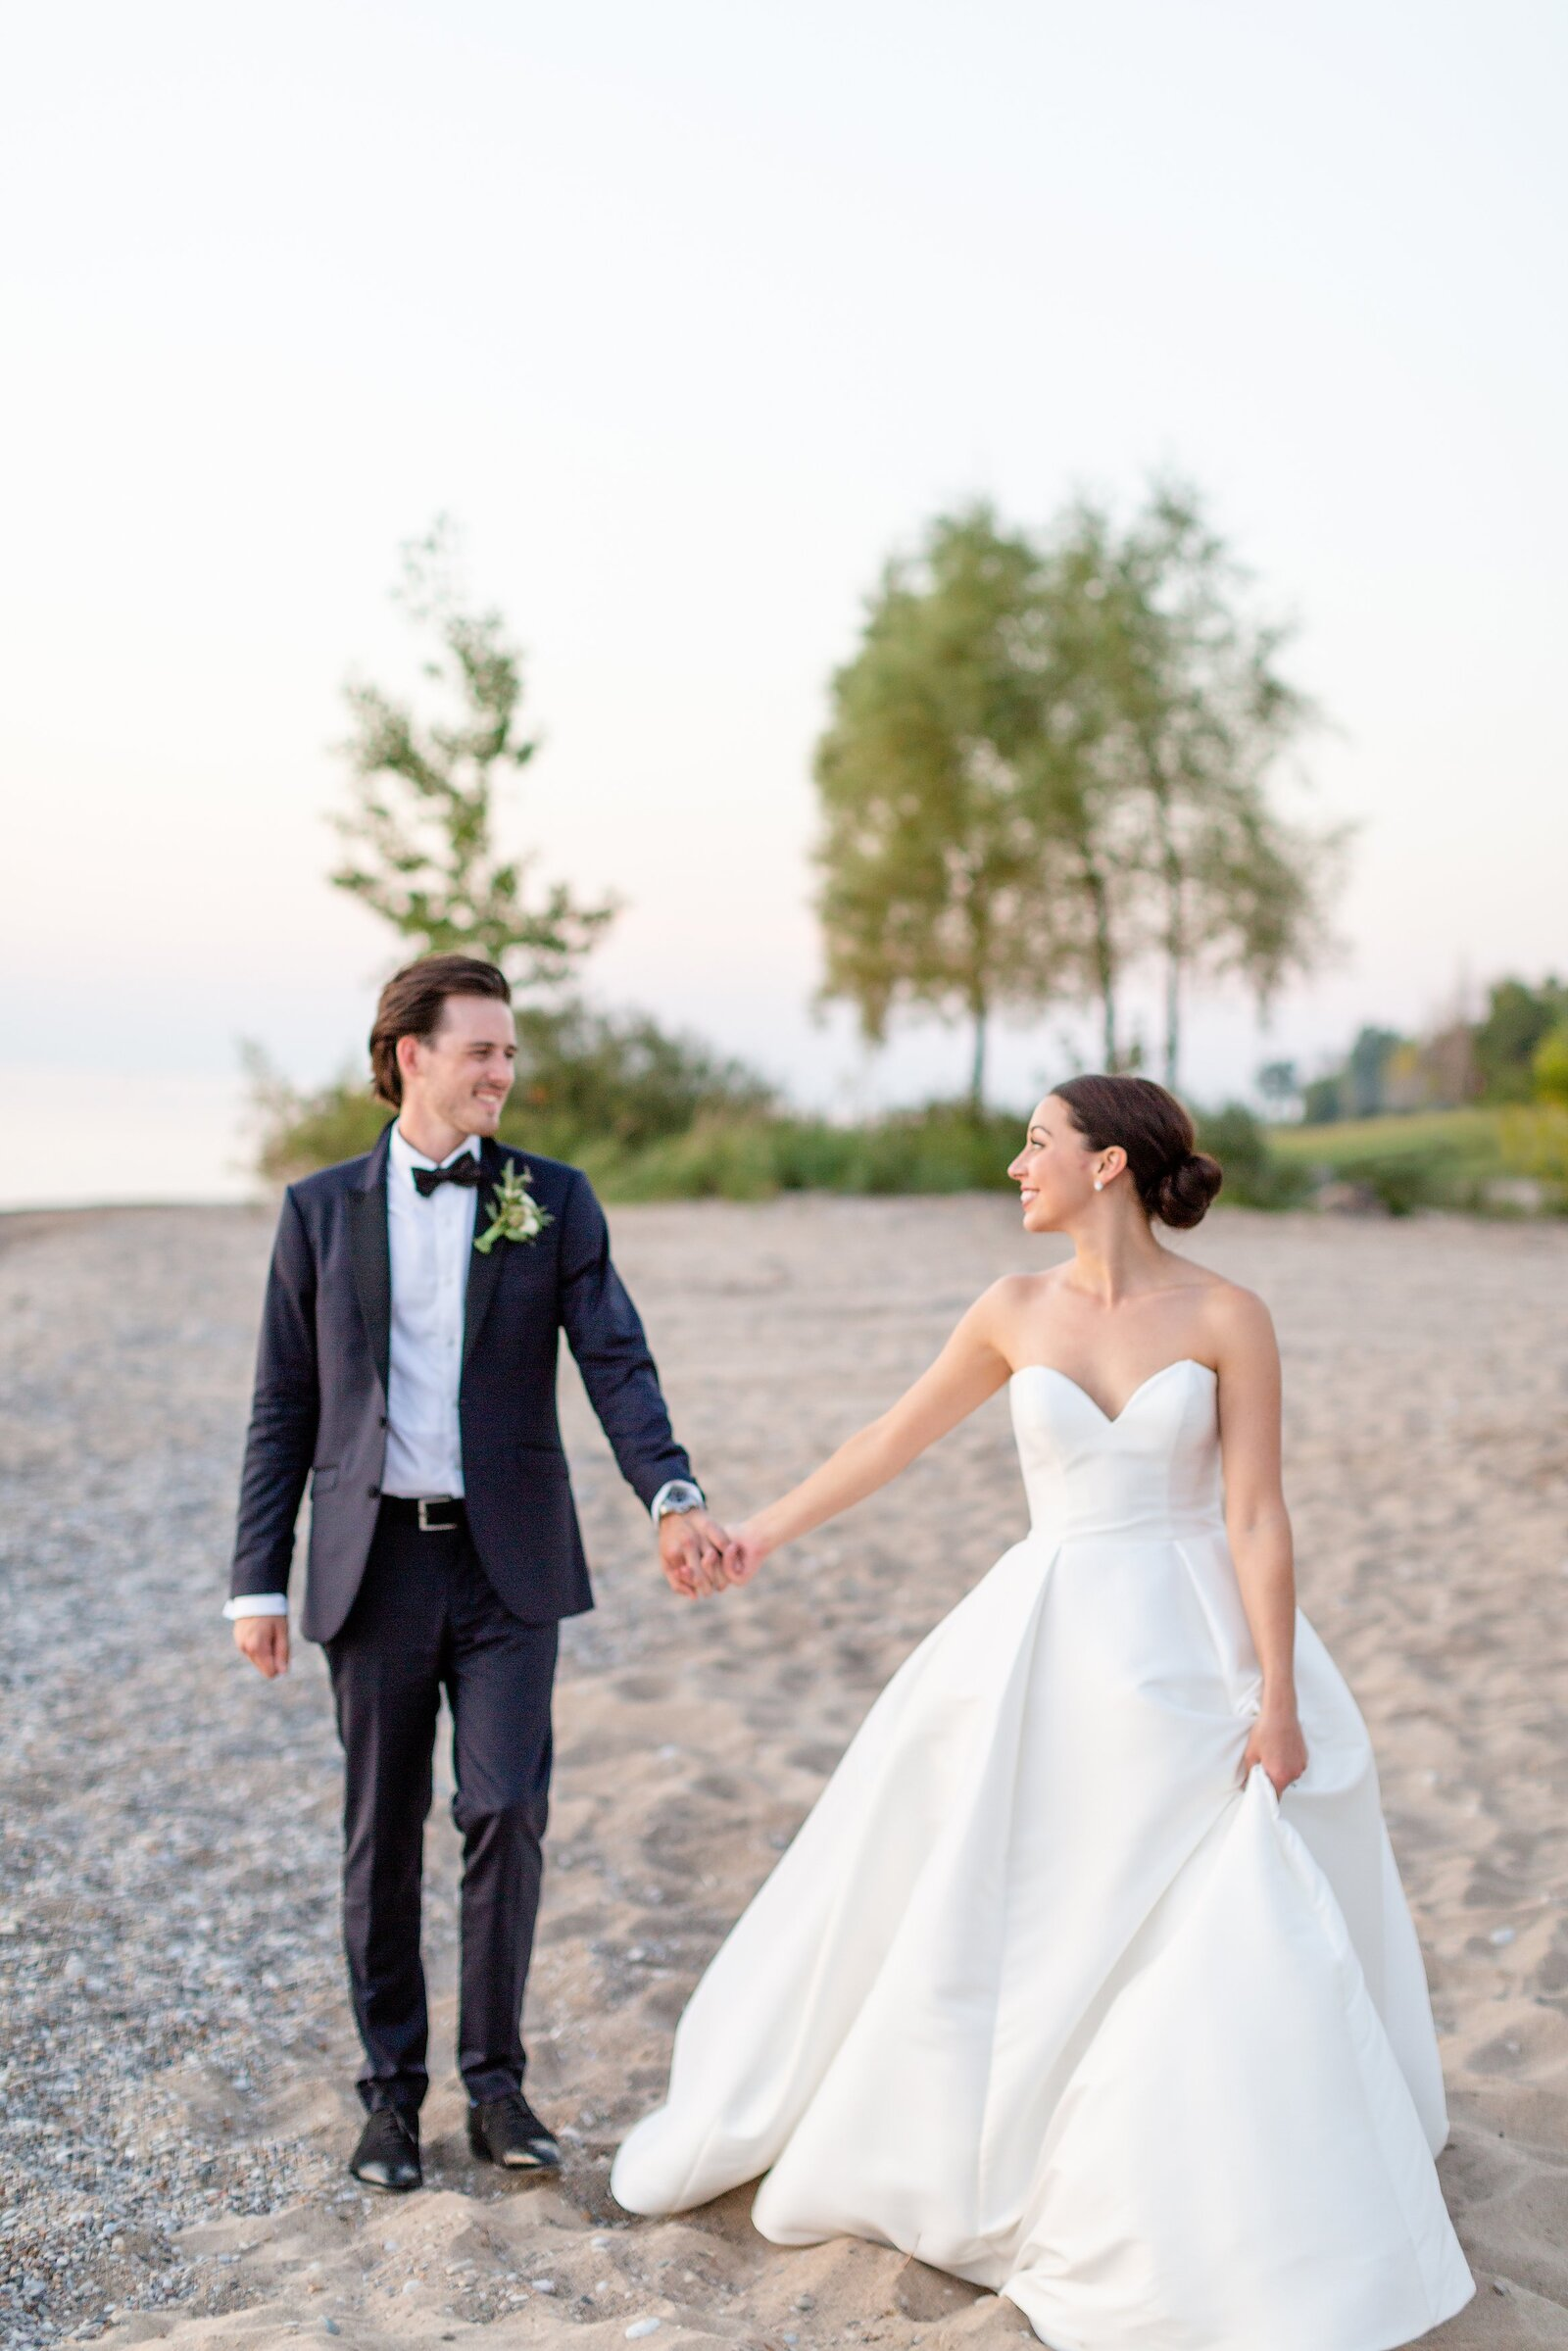 Bride-looks-back-to-her-new-husband-on-their-wedding-day-as-they-walk-along-the-beach-during-sunset-in-Zurich-Ontario